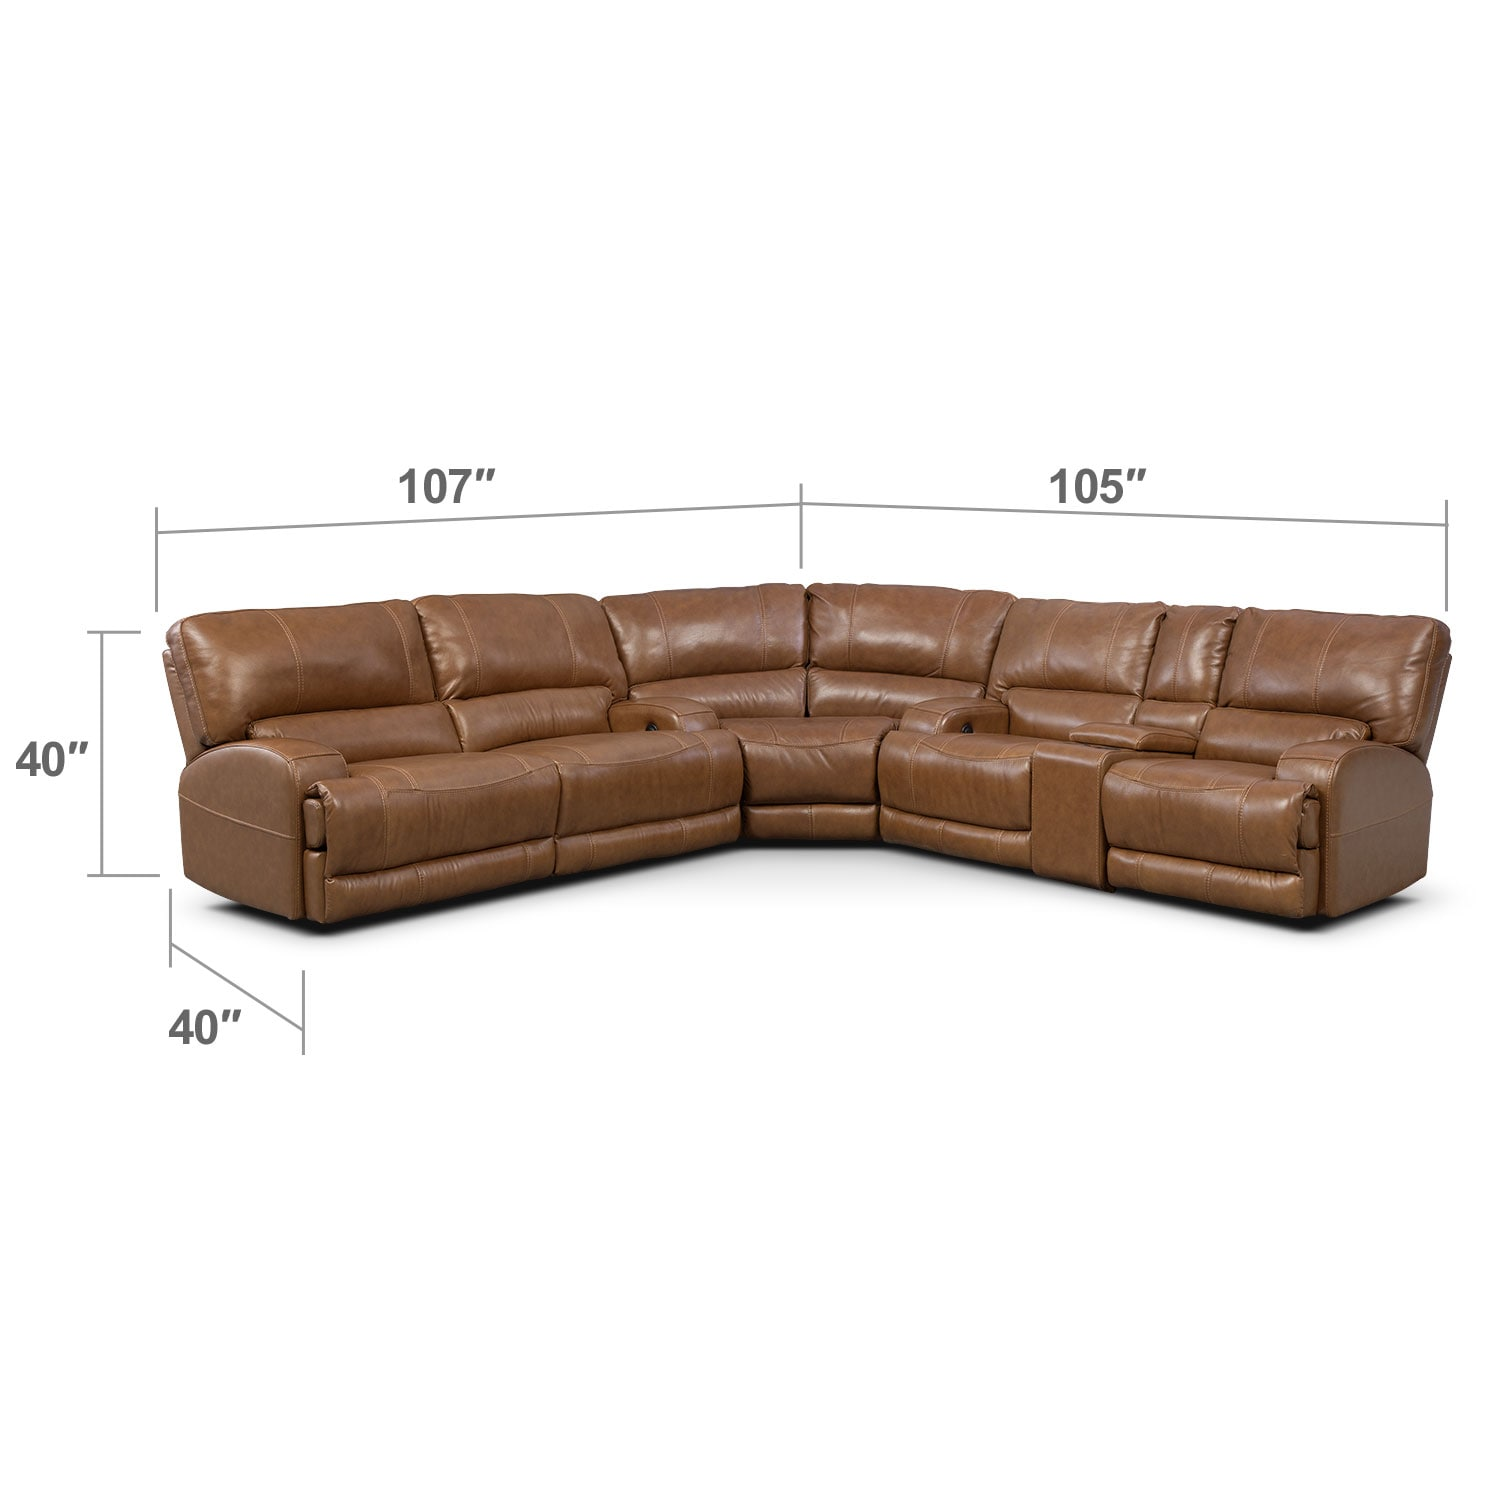 Living Room Furniture - Barton 3-Piece Power Reclining Sectional with 1 Console - Camel